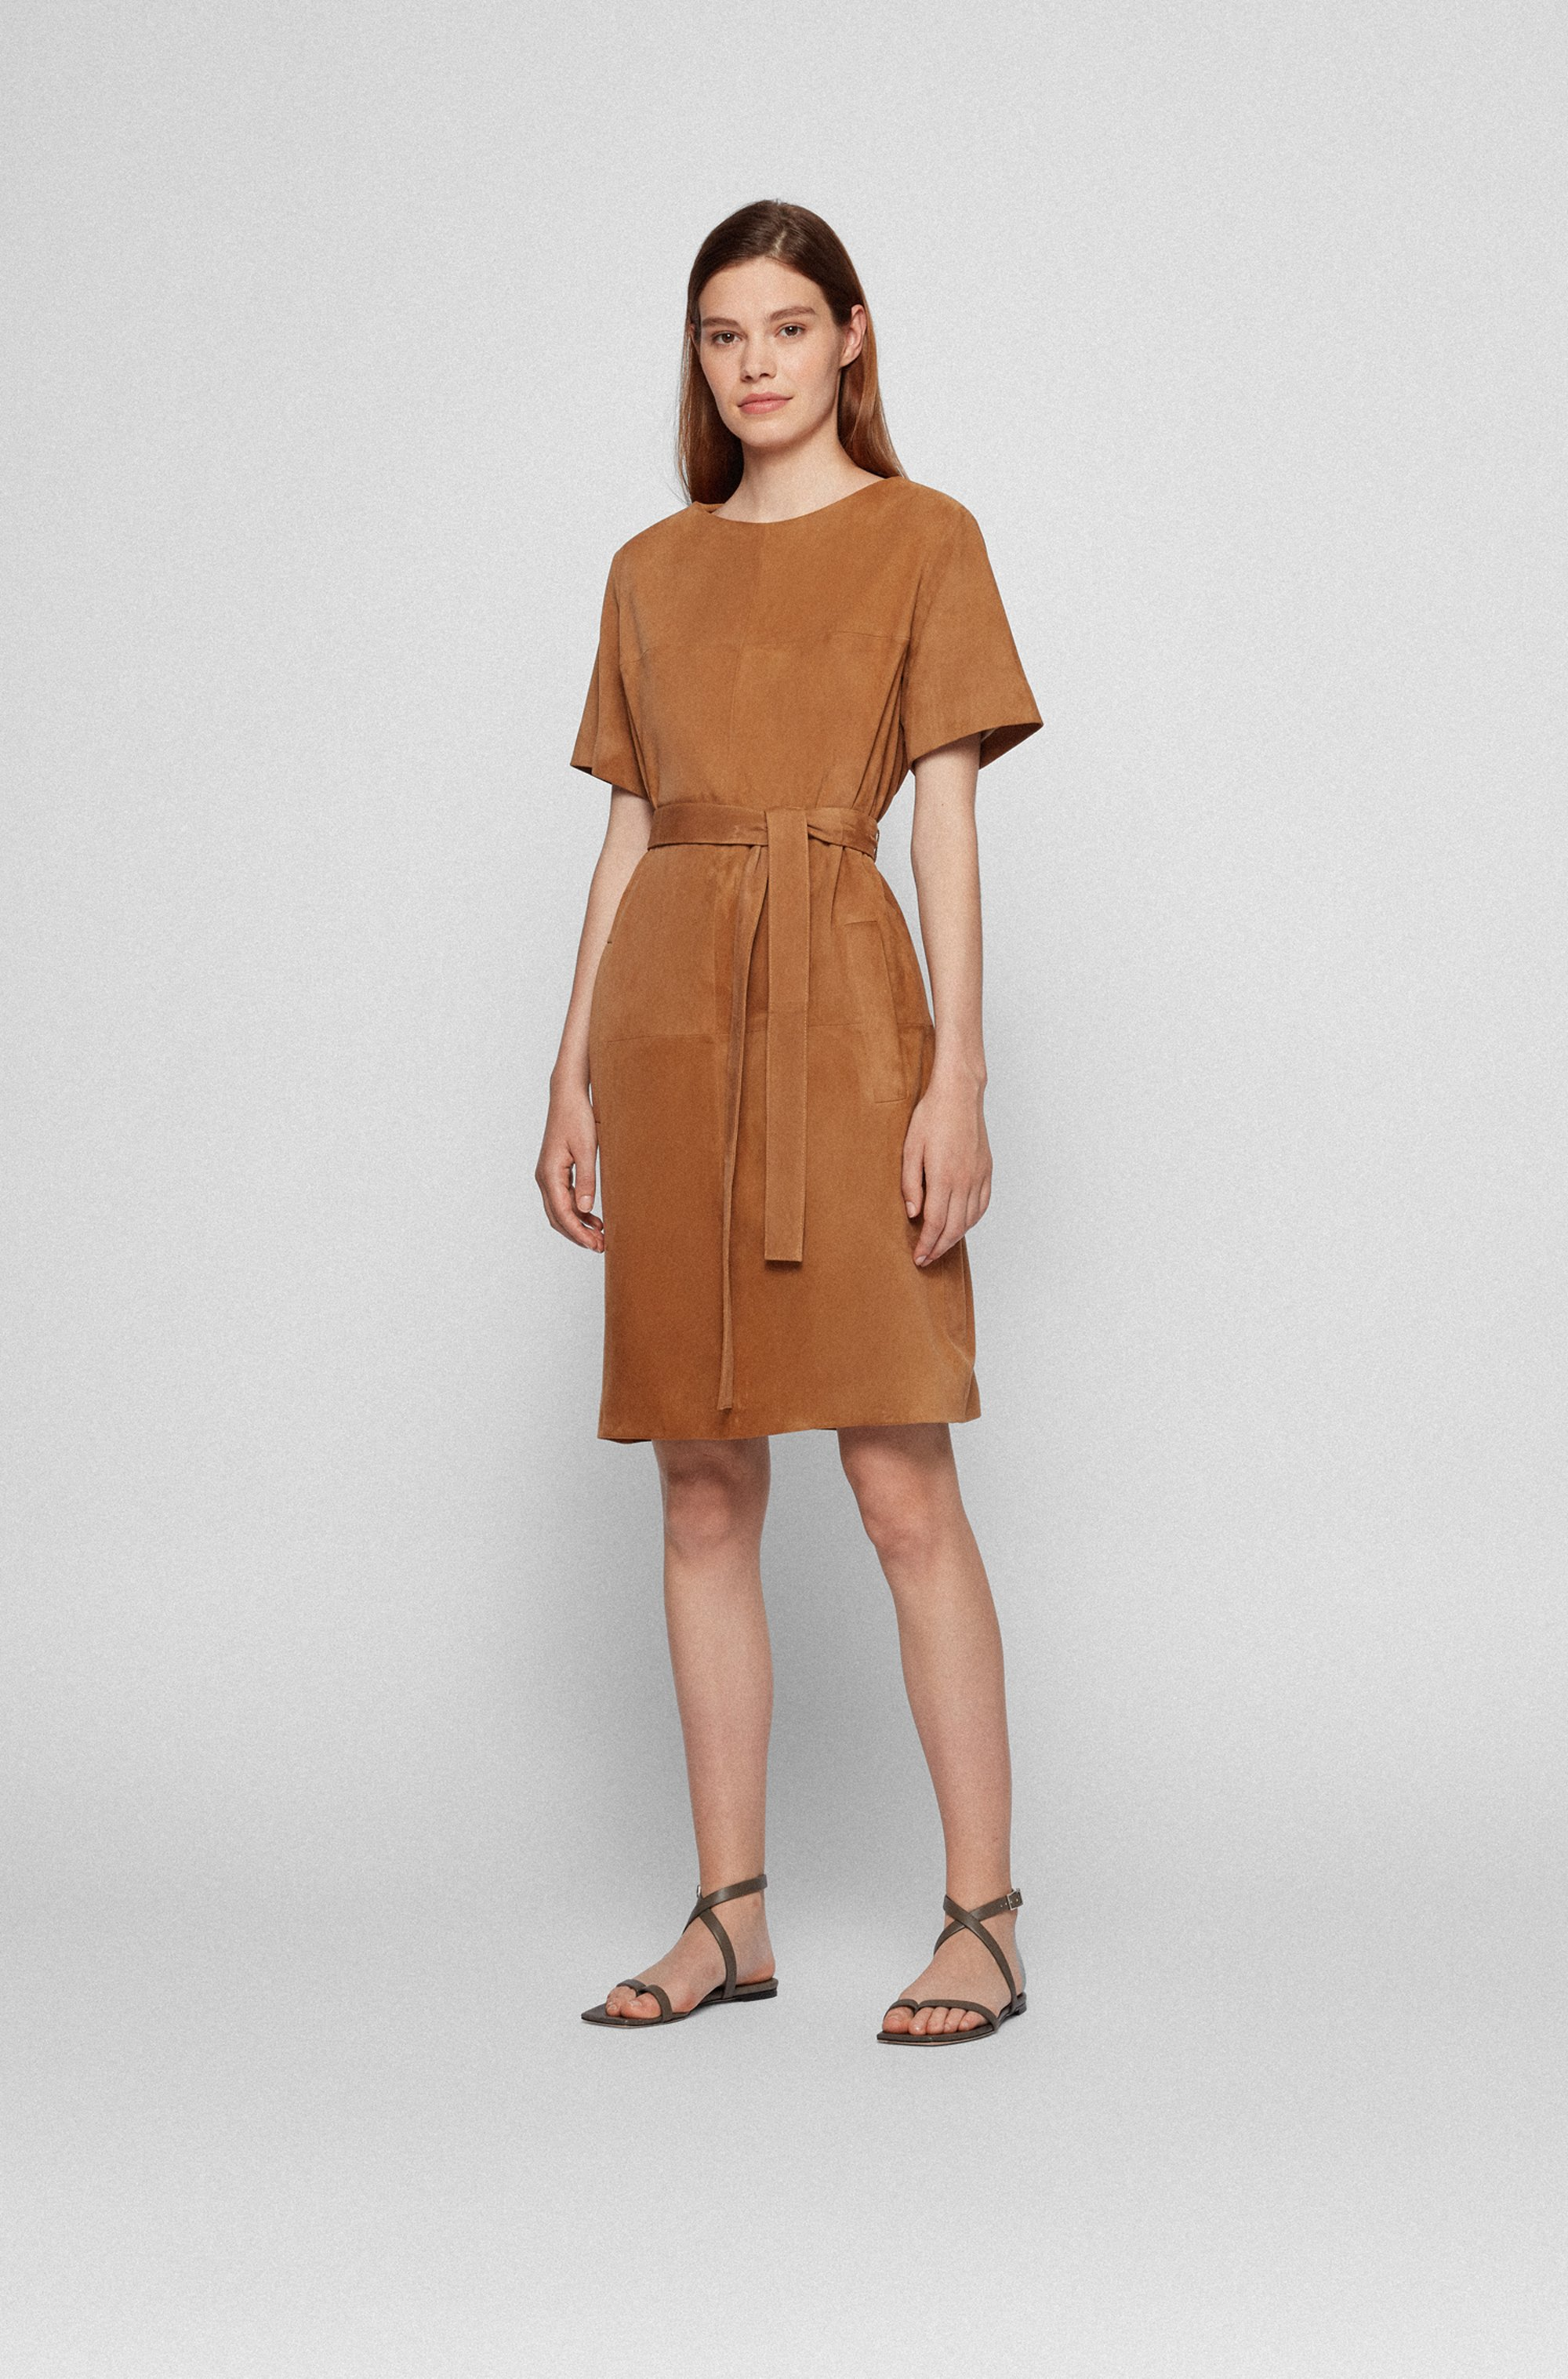 Suede leather shift dress with detachable D-ring belt